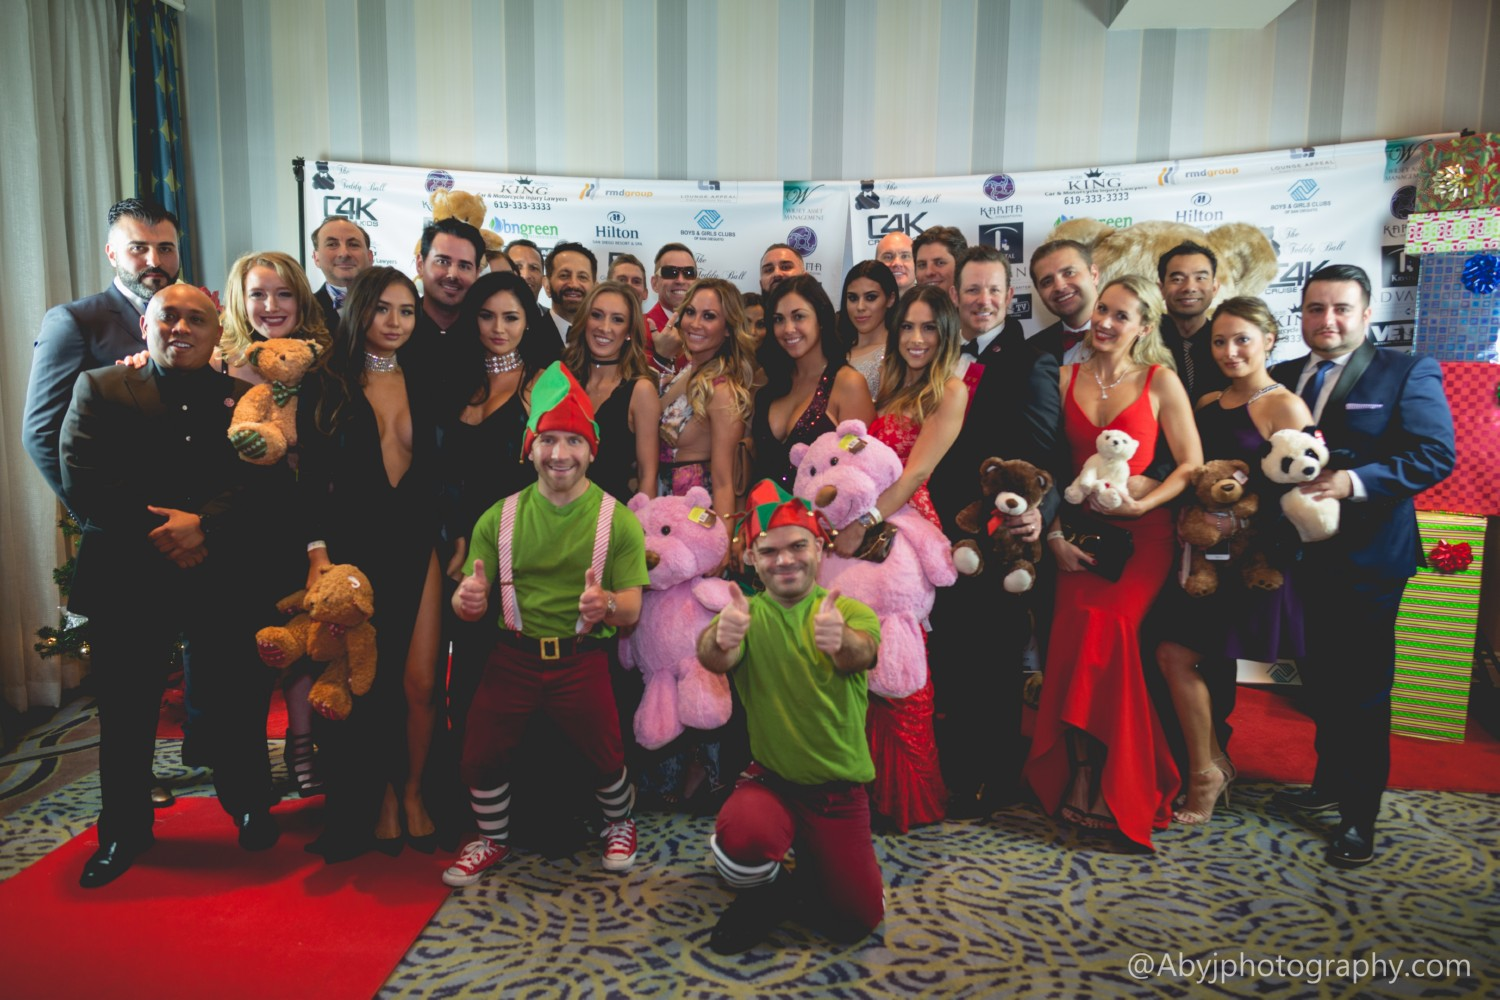 ABYJ_Photography_2016_Teddy_Ball - 204.jpg